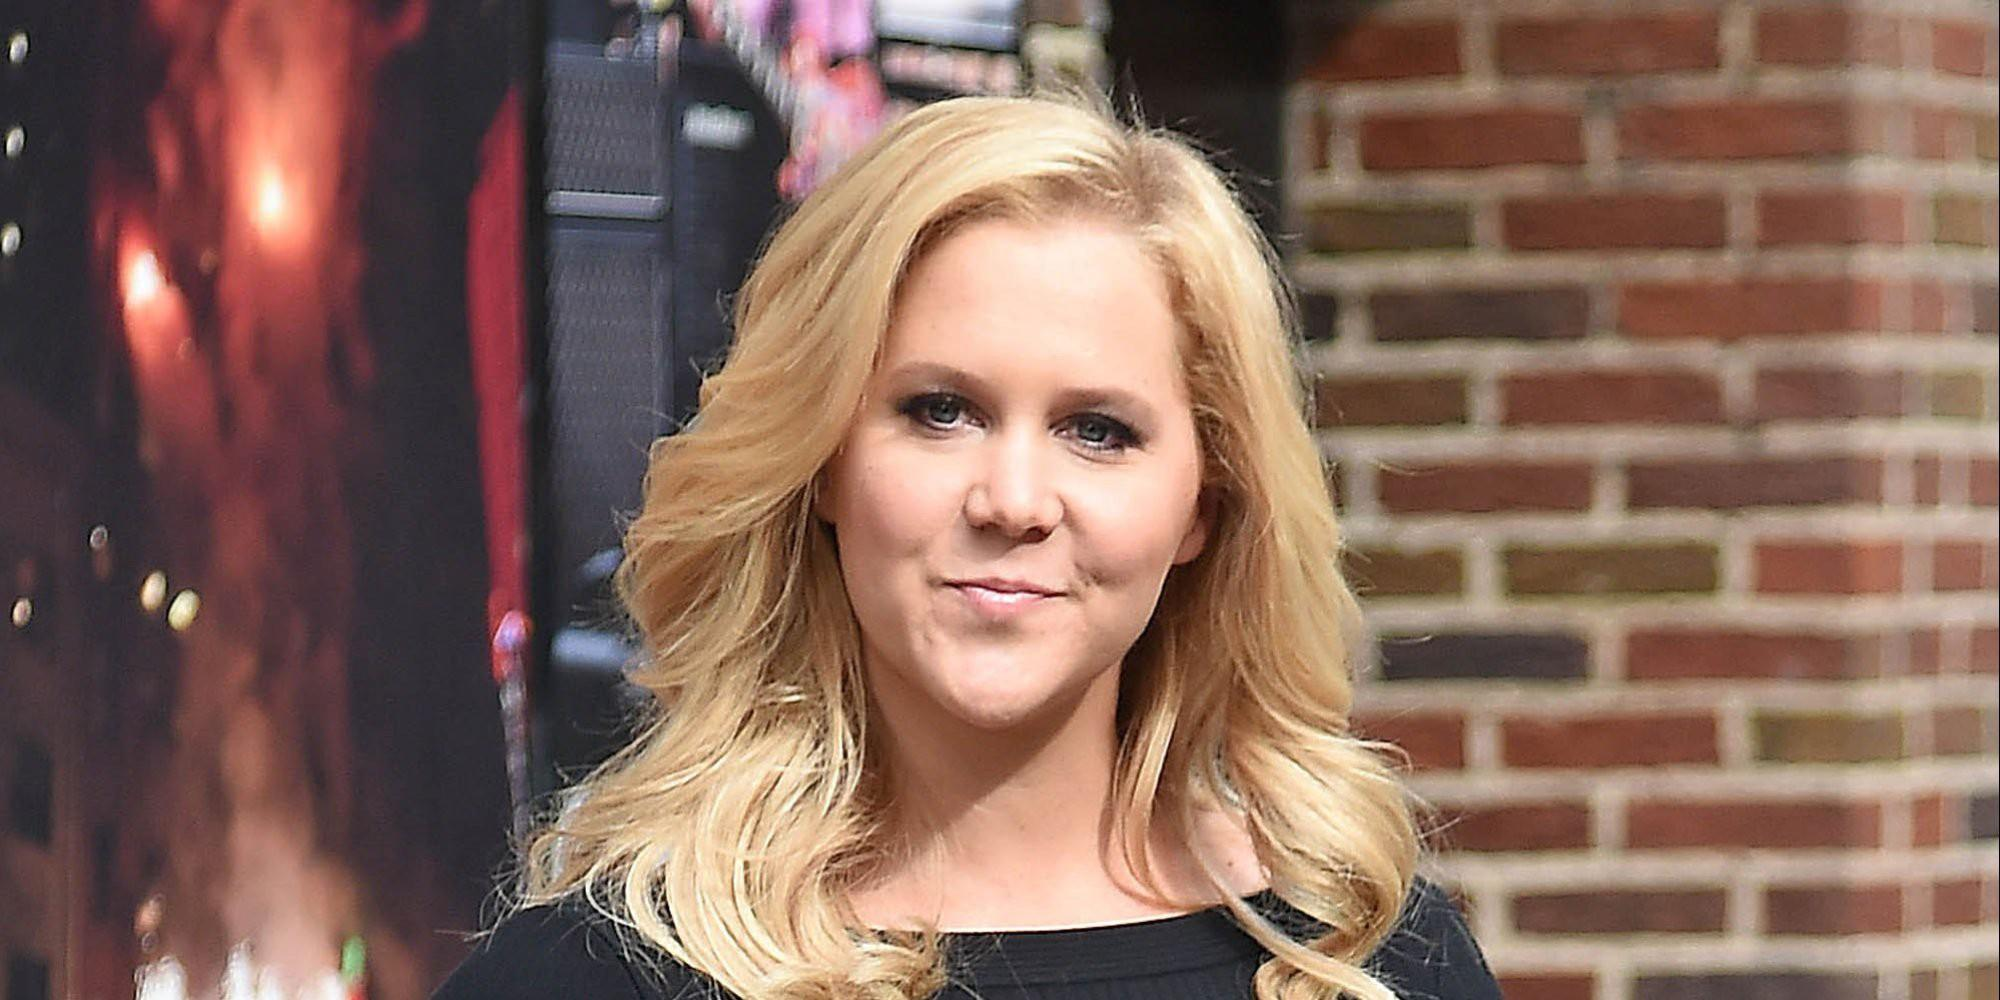 Amy Schumer Nua amy schumer wallpapers - wallpaper cave